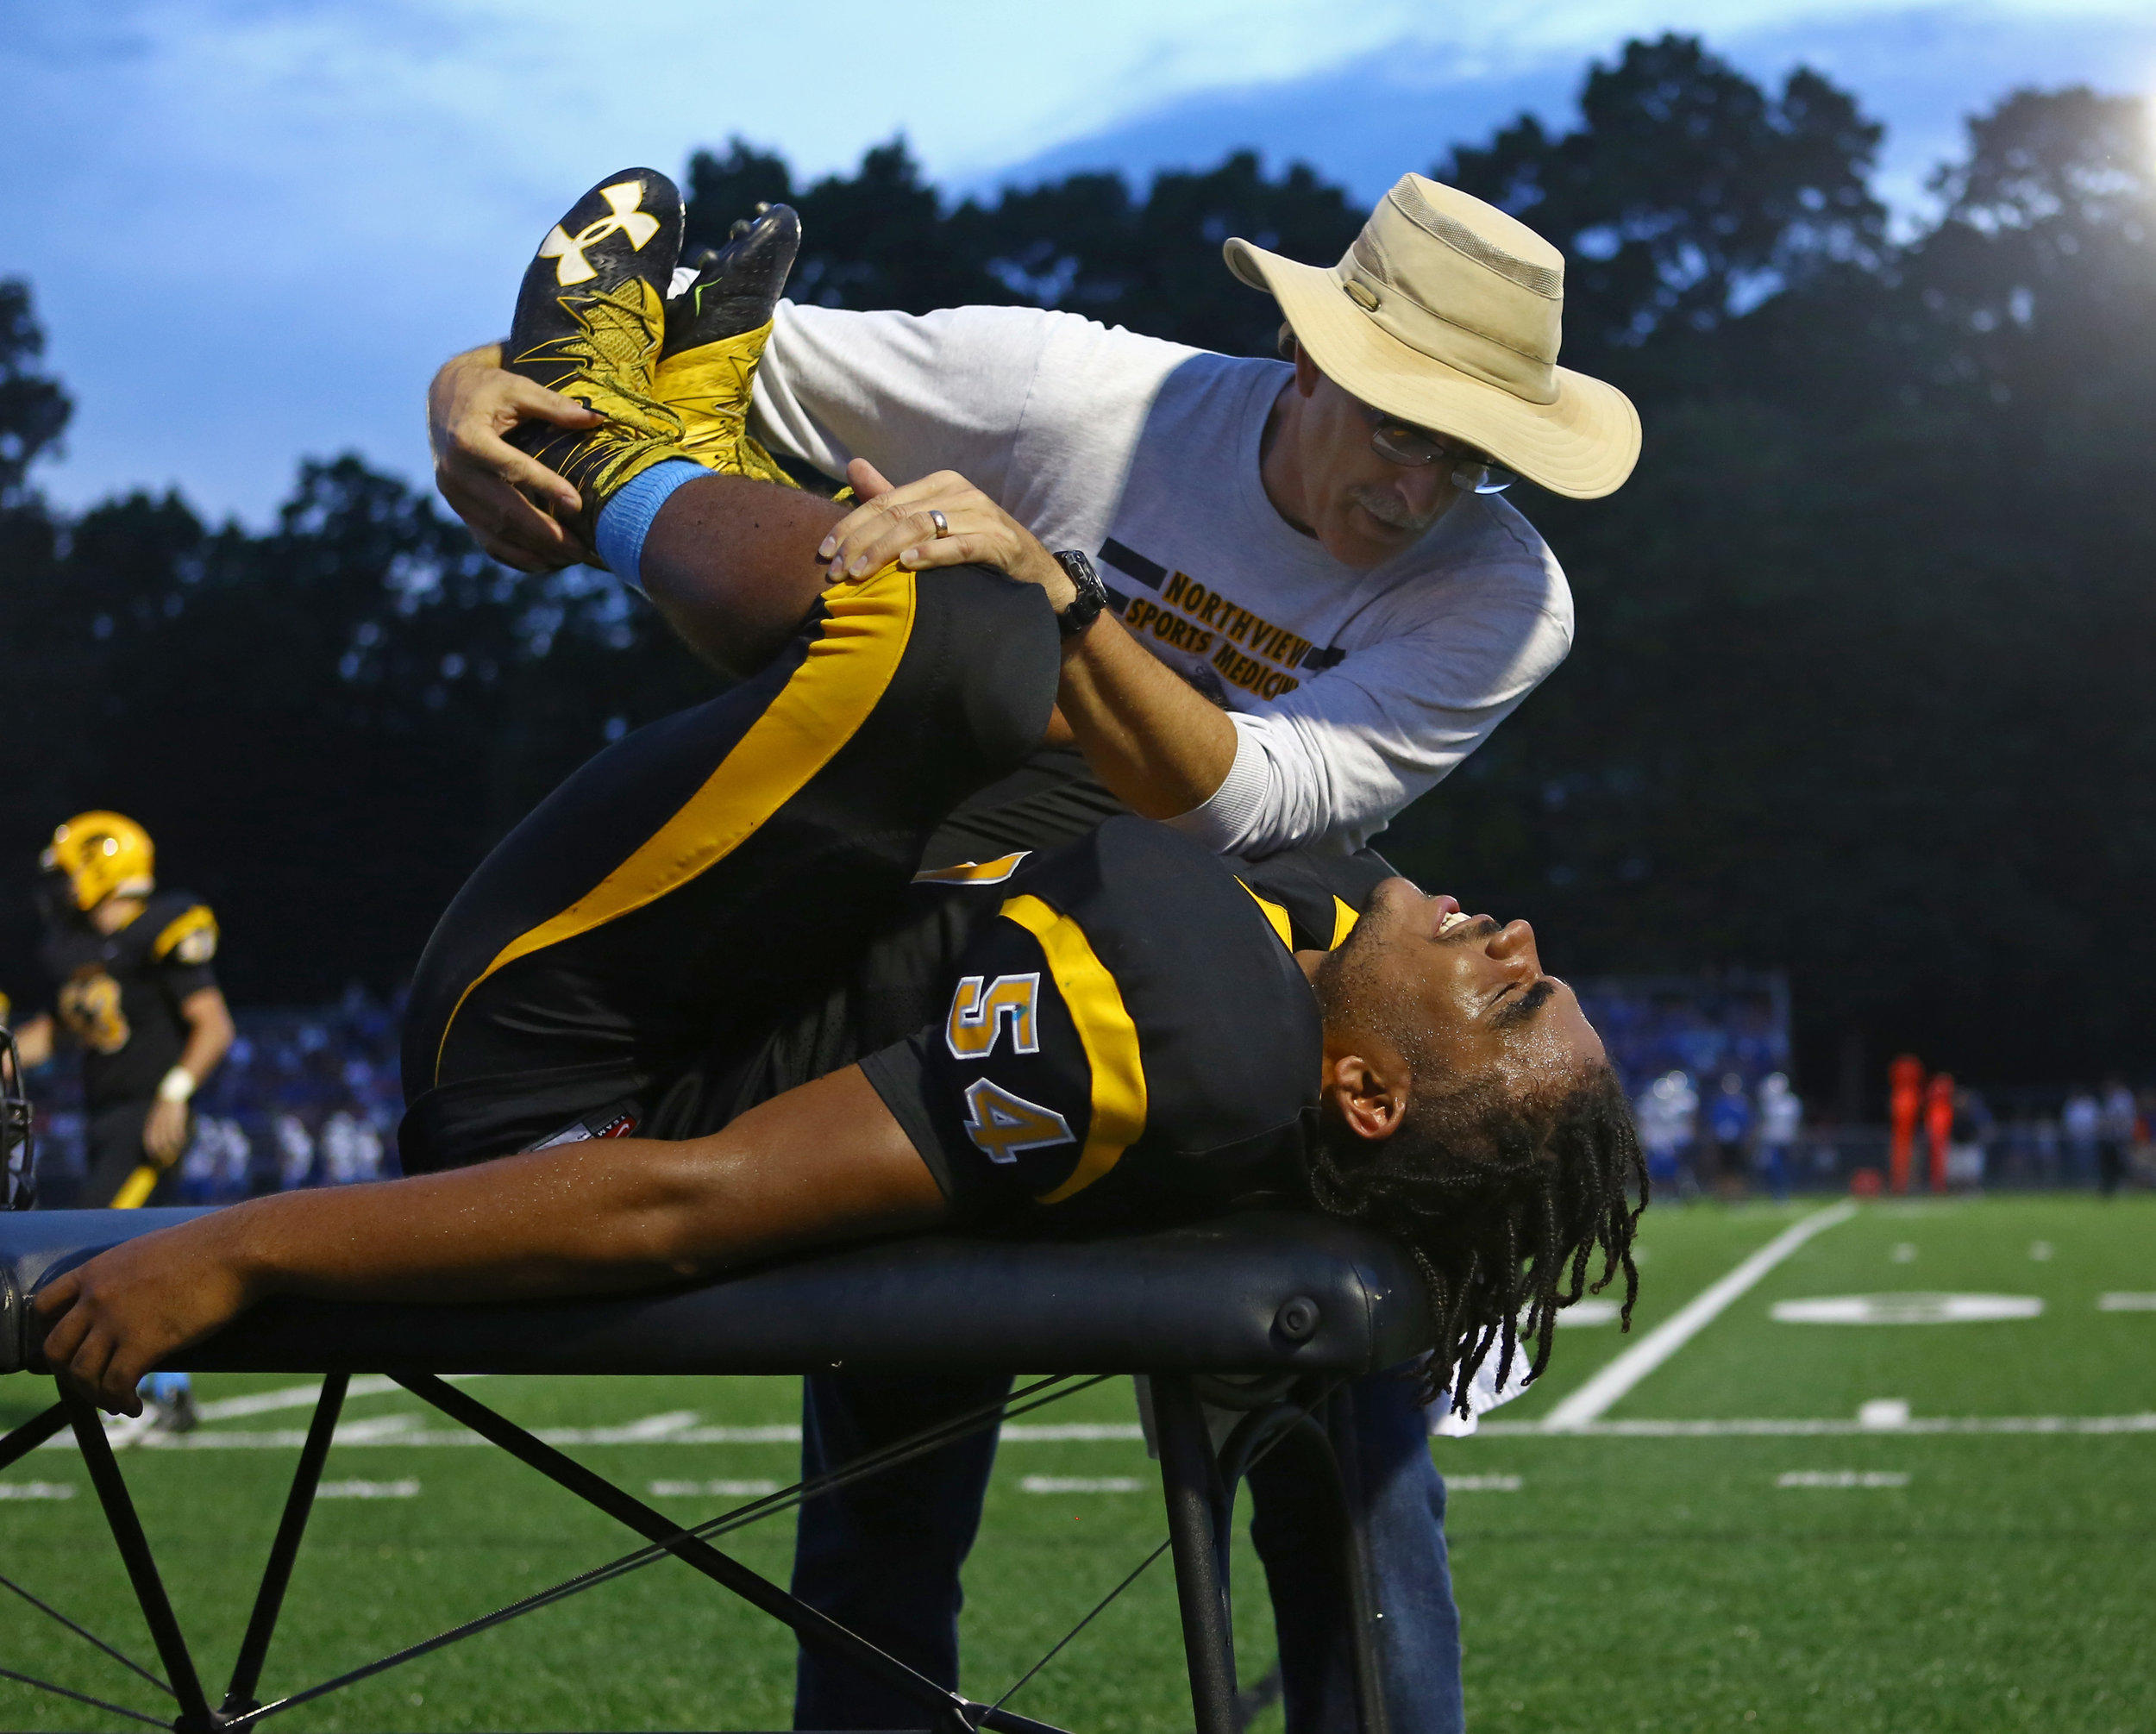 Northview High School athletic trainer Jon Engel helps sophomore defensive end Jayden Bolden stretch after a minor upper leg injury during the game against Anthony Wayne High School at Northview High School in Sylvania on Friday, Sept. 16, 2016. Anthony Wayne High School won the game 35-14.